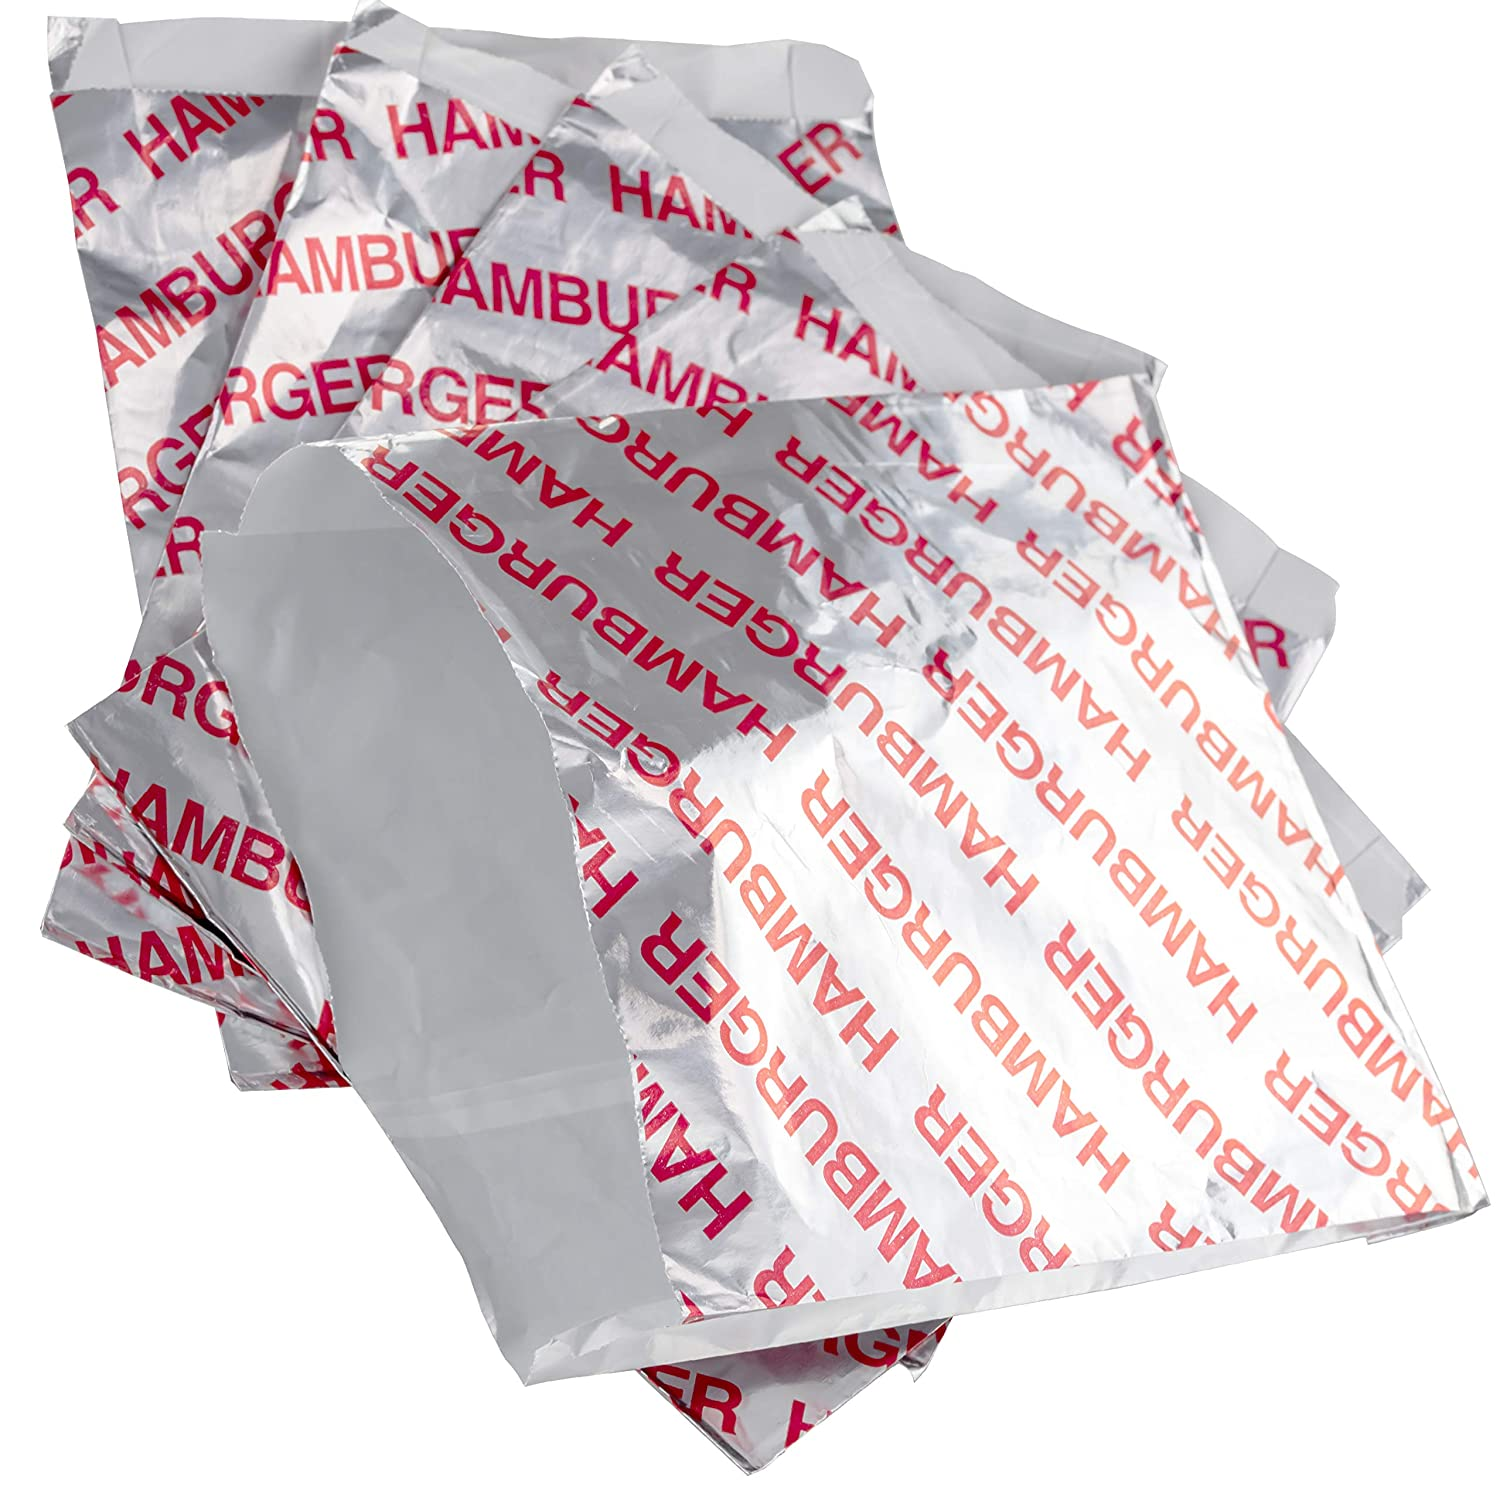 Retro, Grease Proof Burger Wrappers 50 Pk. Great BPA Free Cookout Supply. Pro Quality Bulk Hamburger Bags Are Large and Insulated. Allergen Friendly BBQ Foil Paper Perfect For Baseball Themed Party.